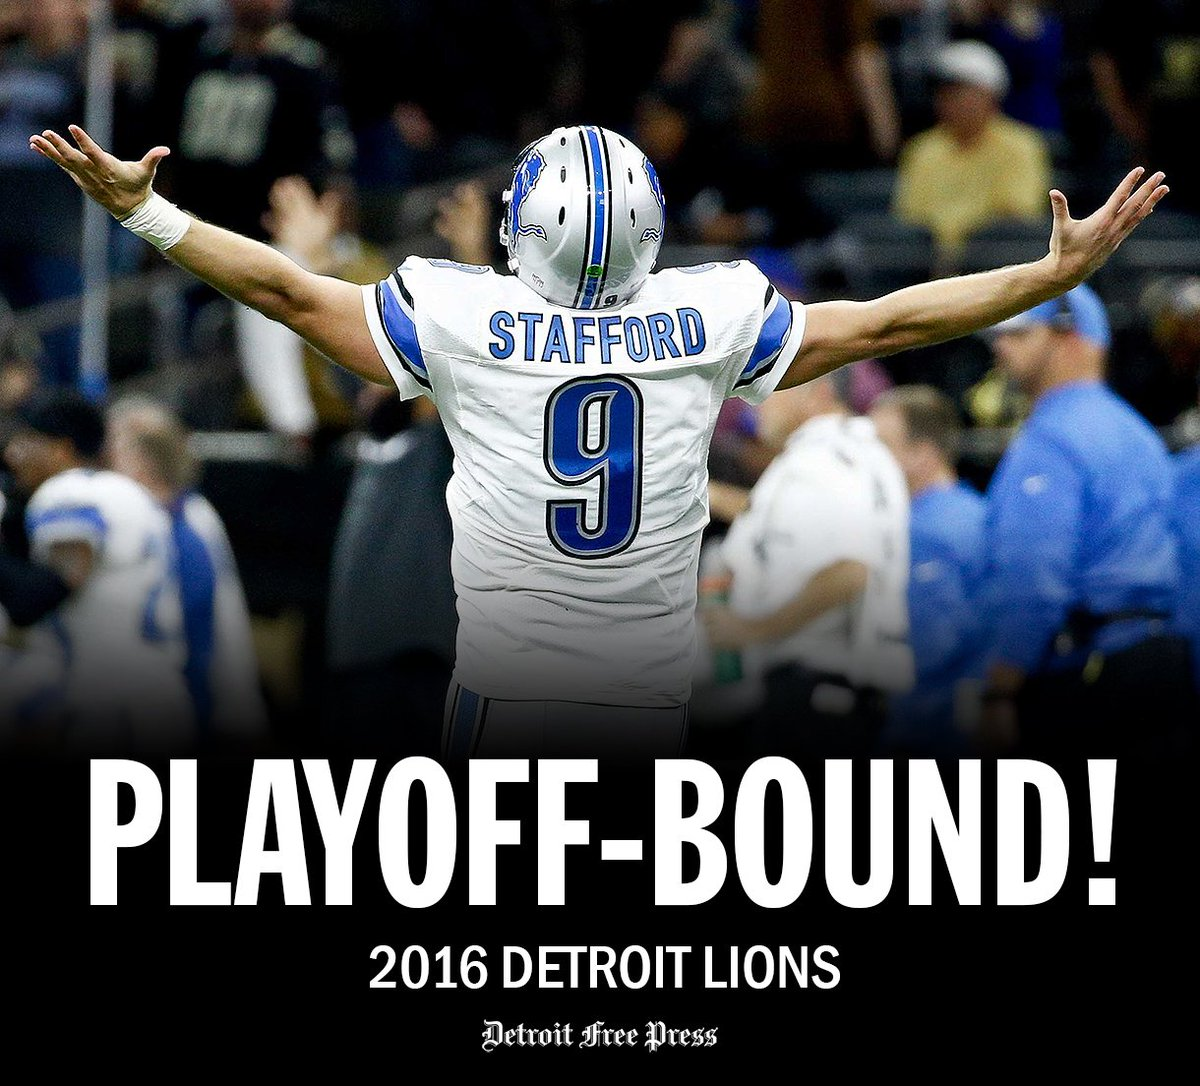 BREAKING NEWS: The @Lions are officially in the NFL postseason with that Redskins loss. https://t.co/Pvf8wdQYVu